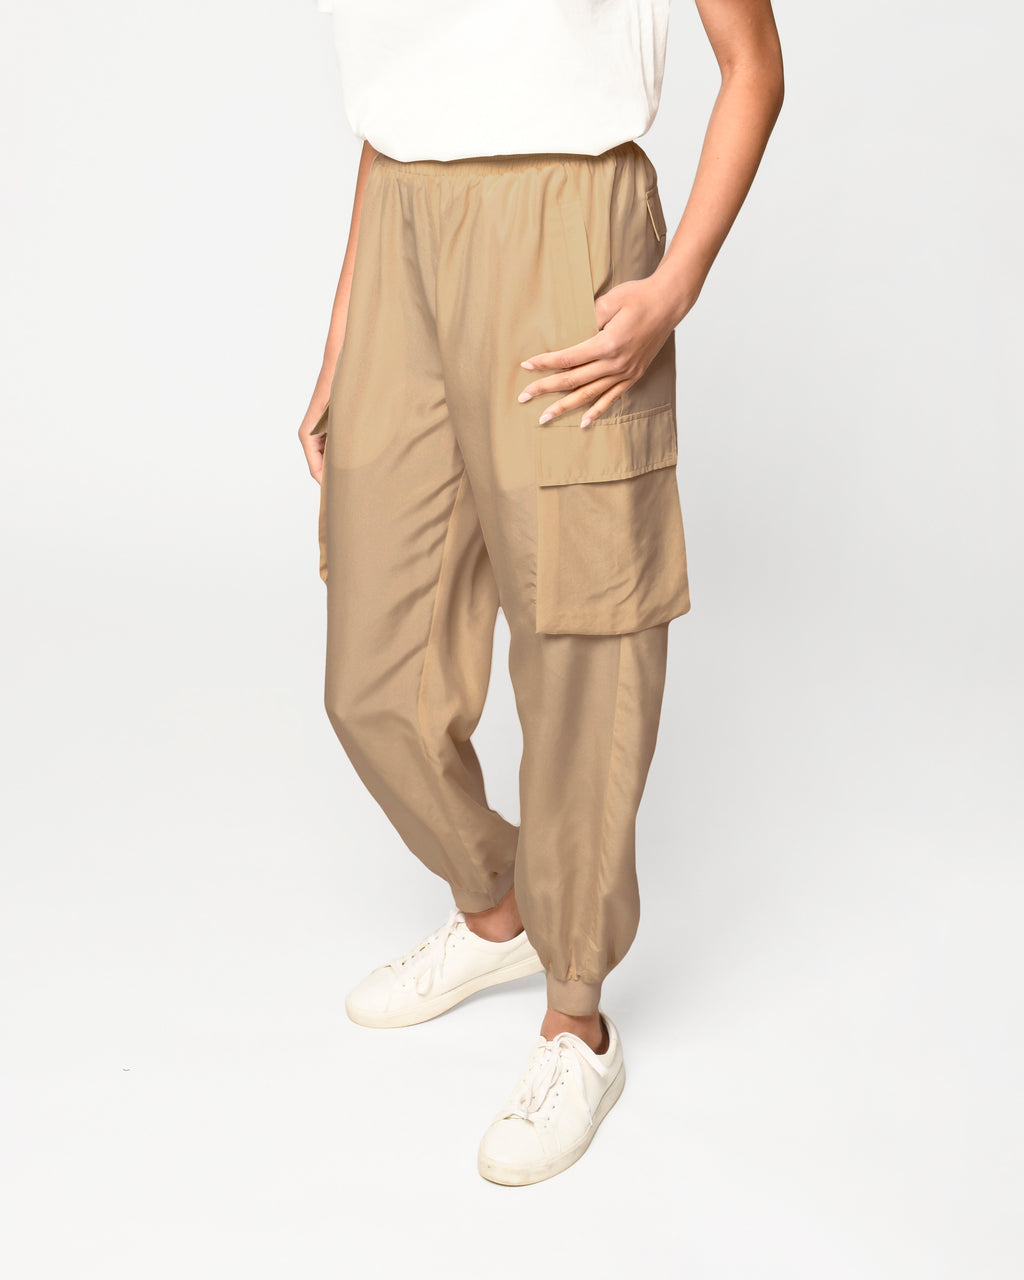 CP18845 - SOLID SILK JOGGER - bottoms - pants - Crafted from 100% silk, these lightweight joggers are perfect from transitioning from home to street. Add 1 line break Stylist Tip: Style with our silk t-shirt for a coordinating set.